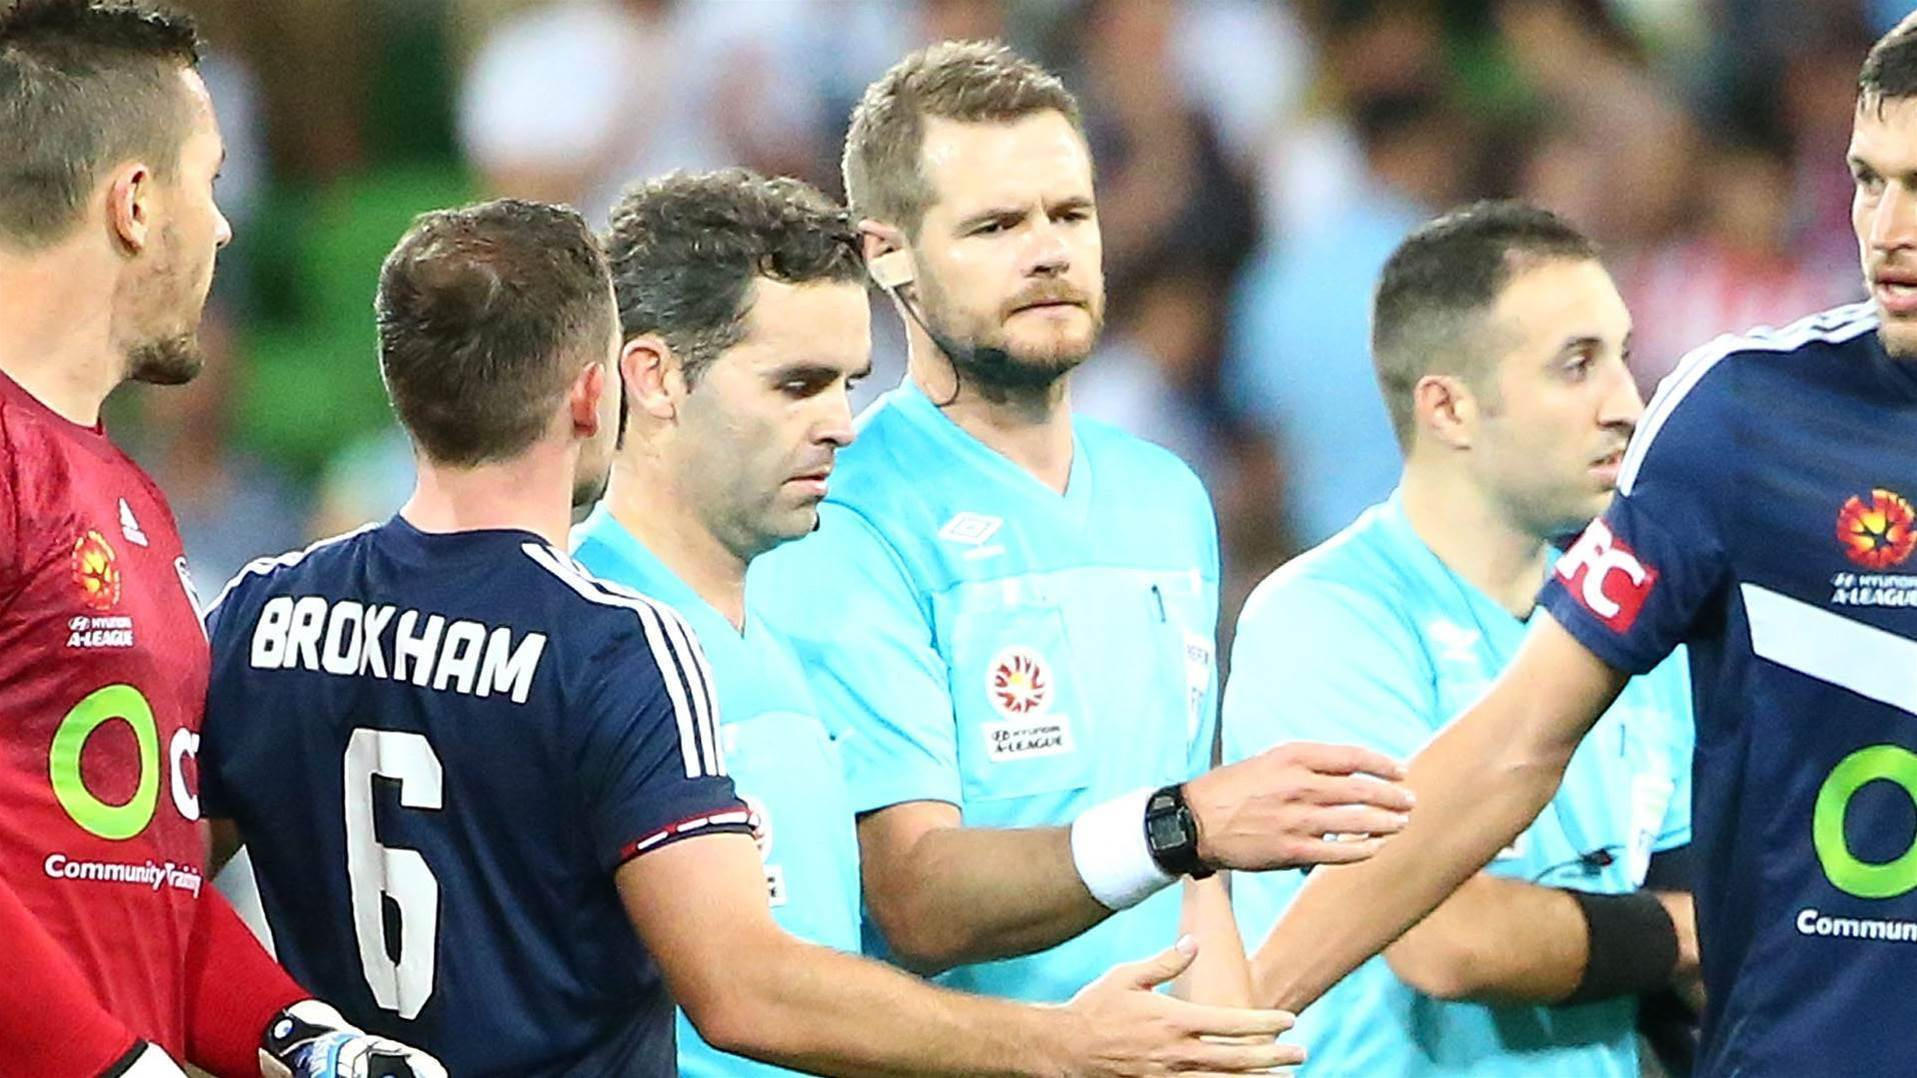 Broxham: Video refs only a good thing